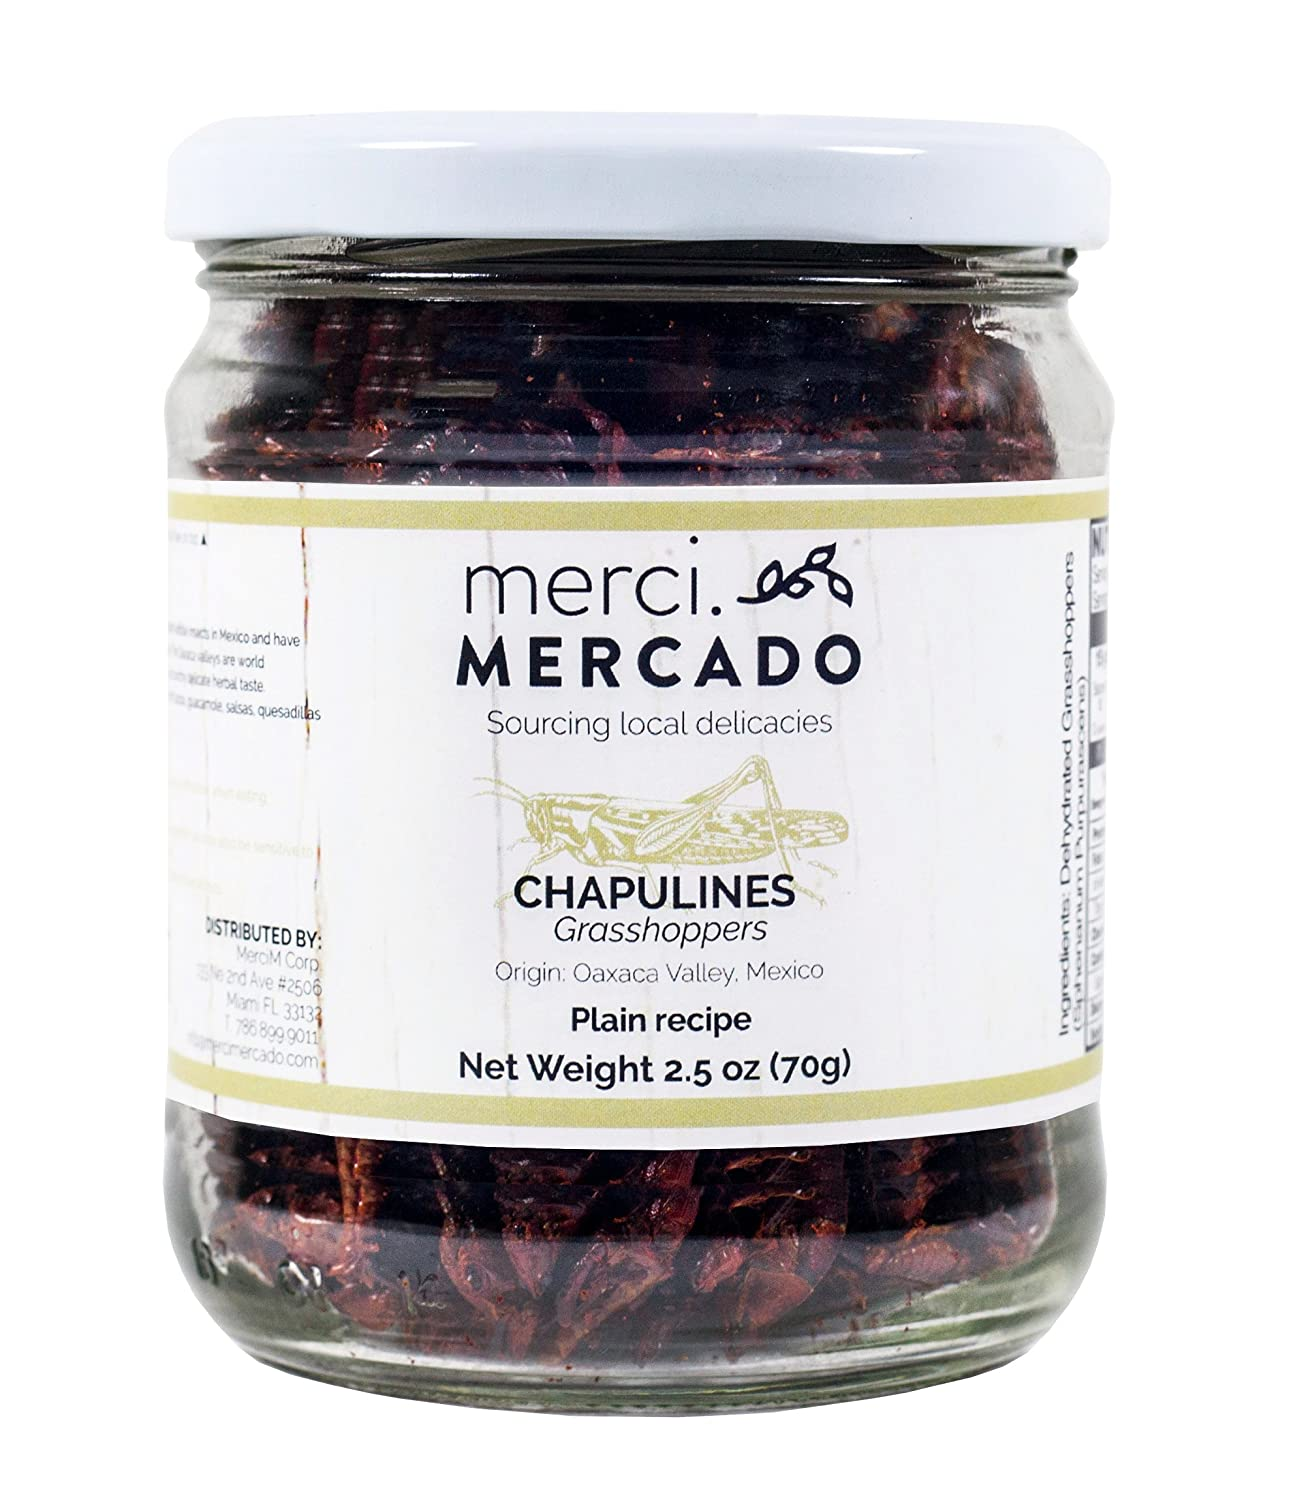 Merci Mercado Chapulines (grasshoppers) - Gourmet edible insects from Oaxaca Mexico (Plain recipe) ( 70g / 2.4oz ) HIGH PROTEIN CONTENT